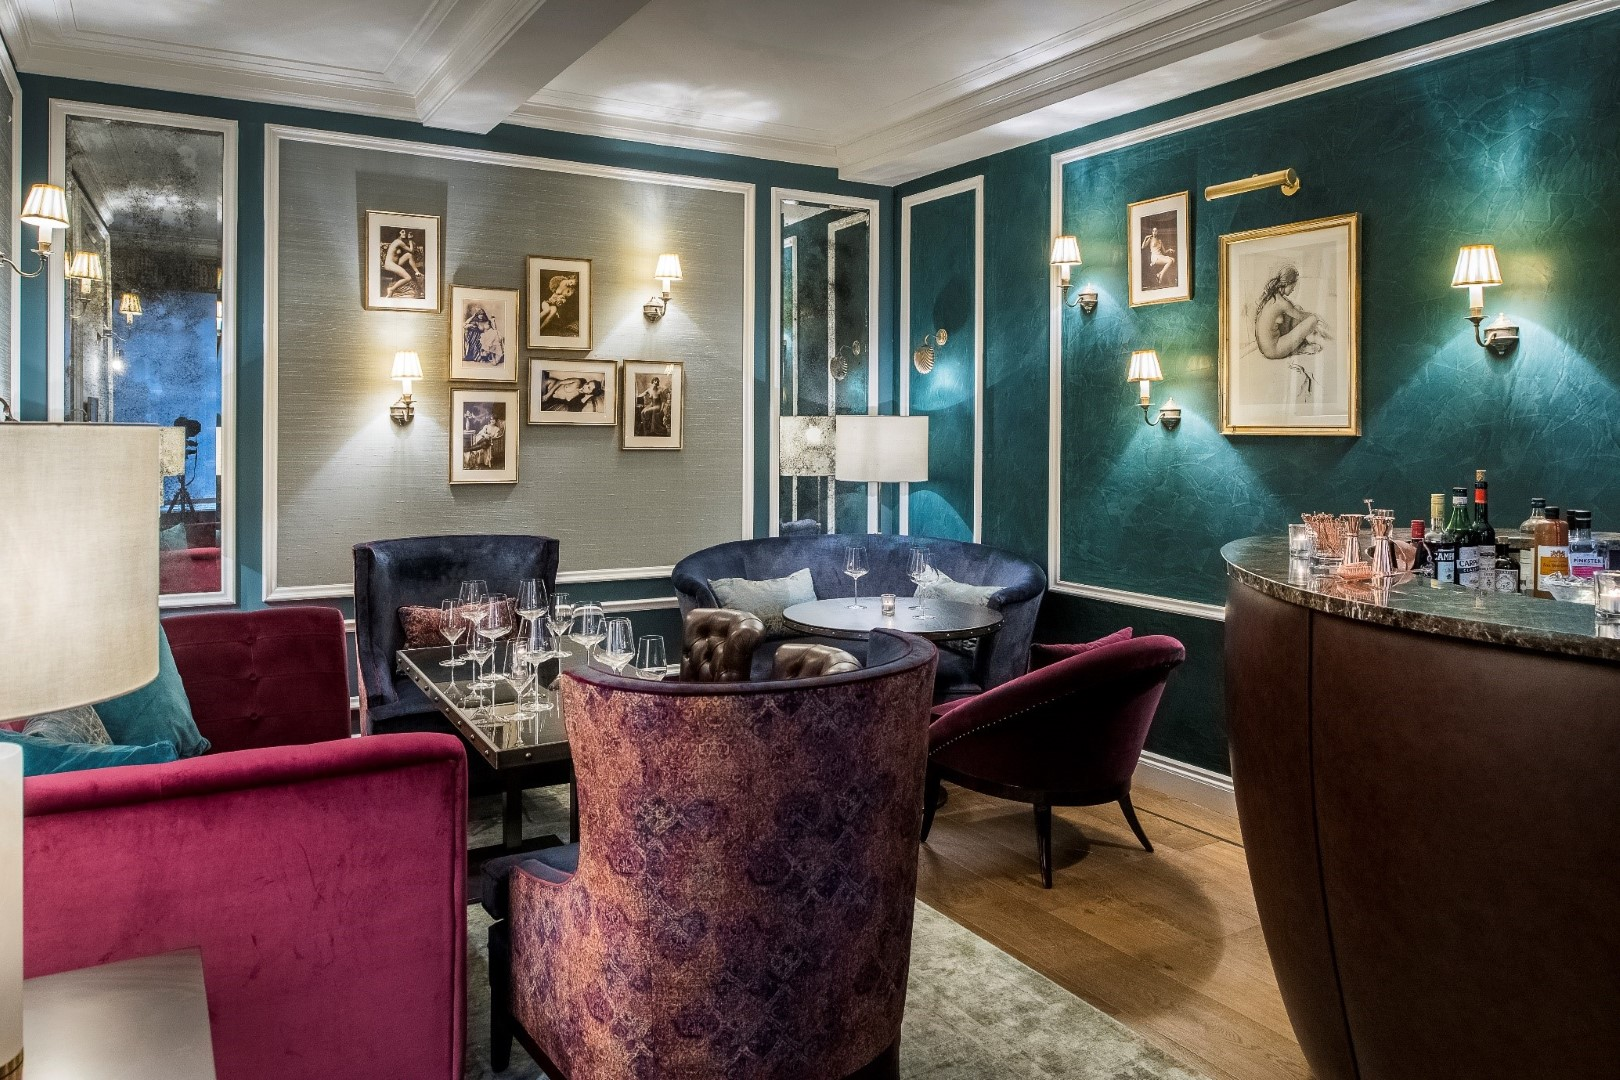 Best private members clubs London